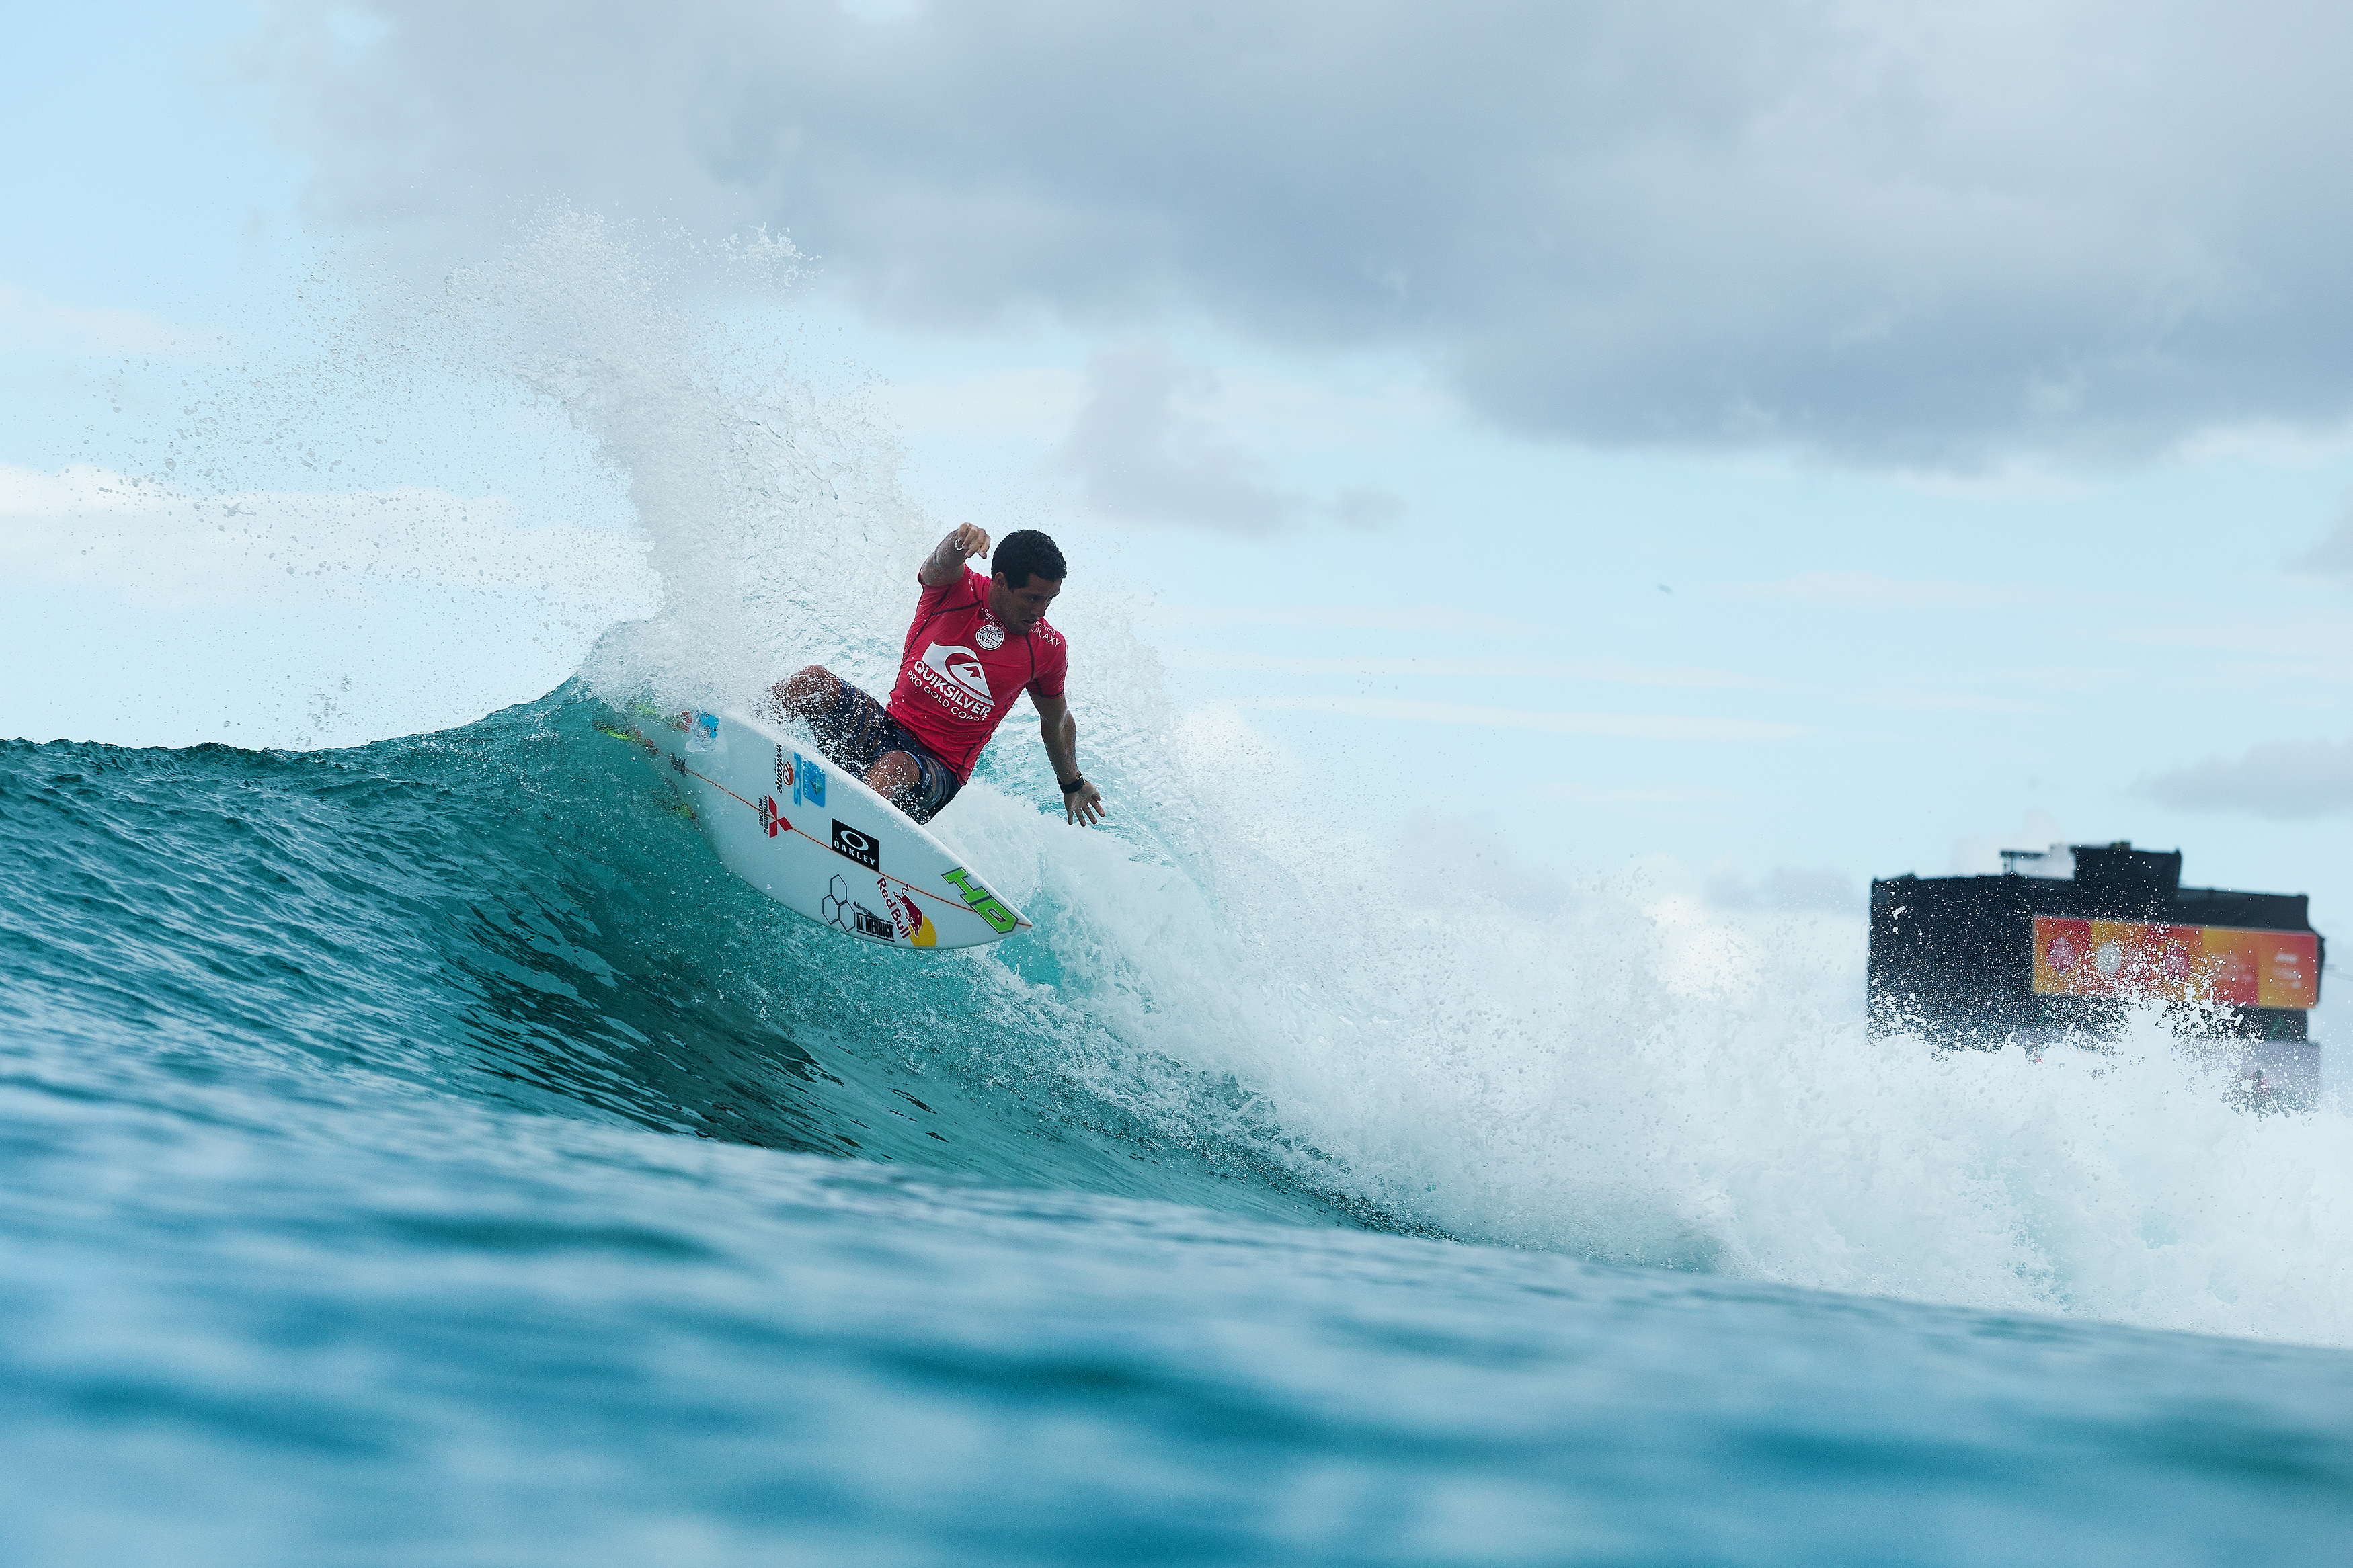 Reining World Champion Adriano De Souza will be looking to get his 2016 competitive season off to a flying start at Snapper Rocks this Thursday when the Quiksilver Pro Gold Coast Kicks off. Image: WSL / Cestrari